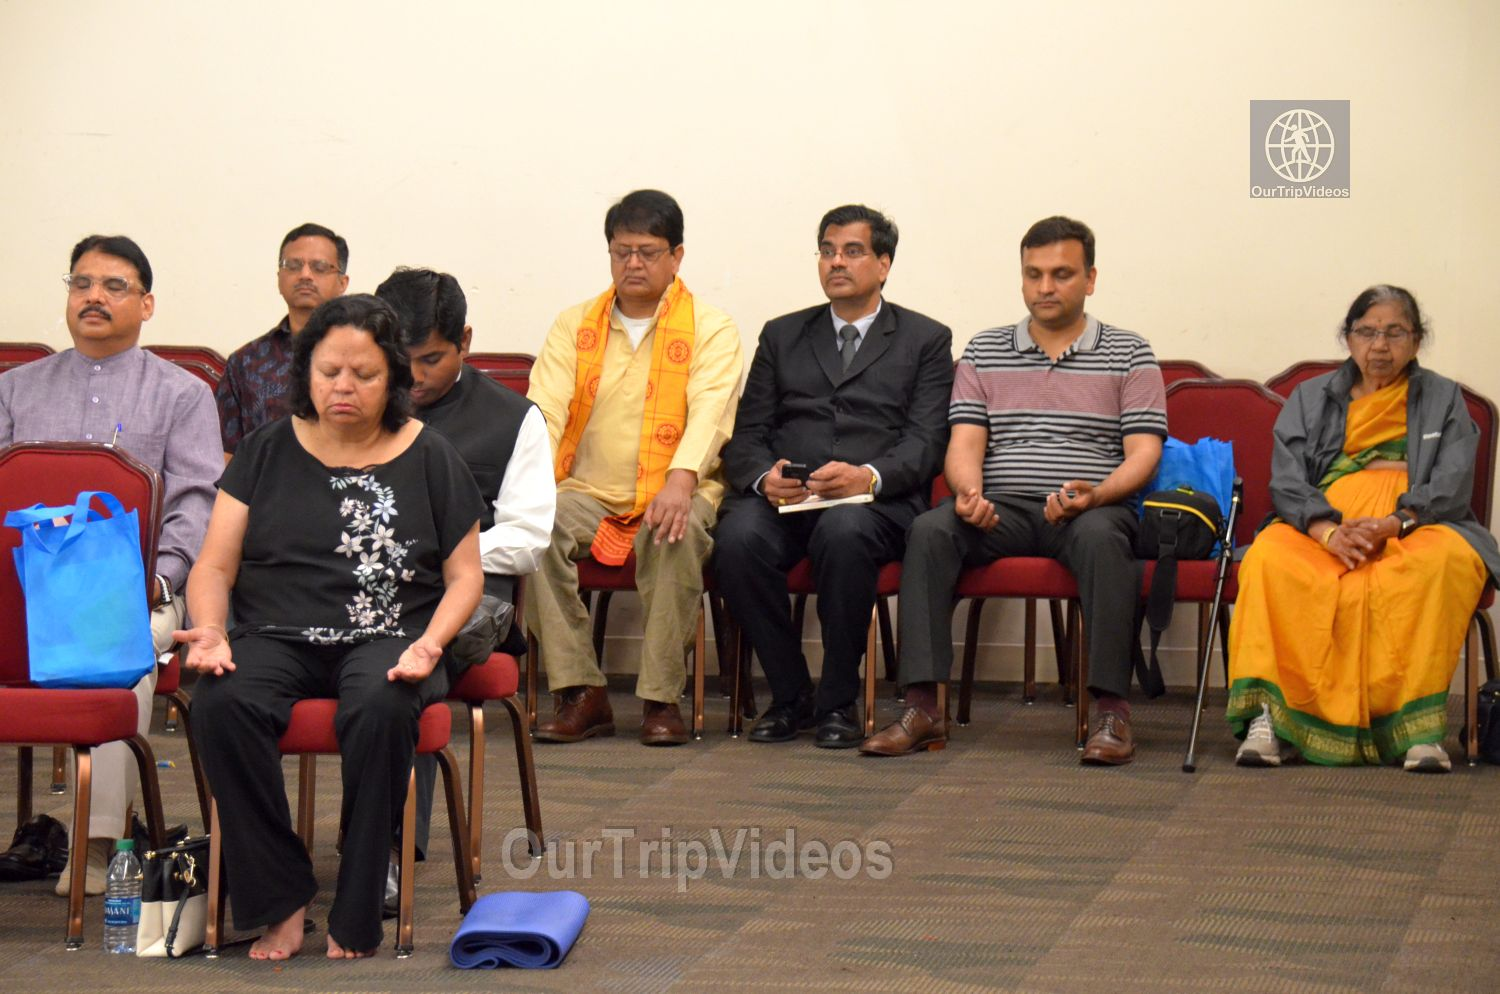 International Yoga Day at ICC, Milpitas, CA, USA - Picture 21 of 25